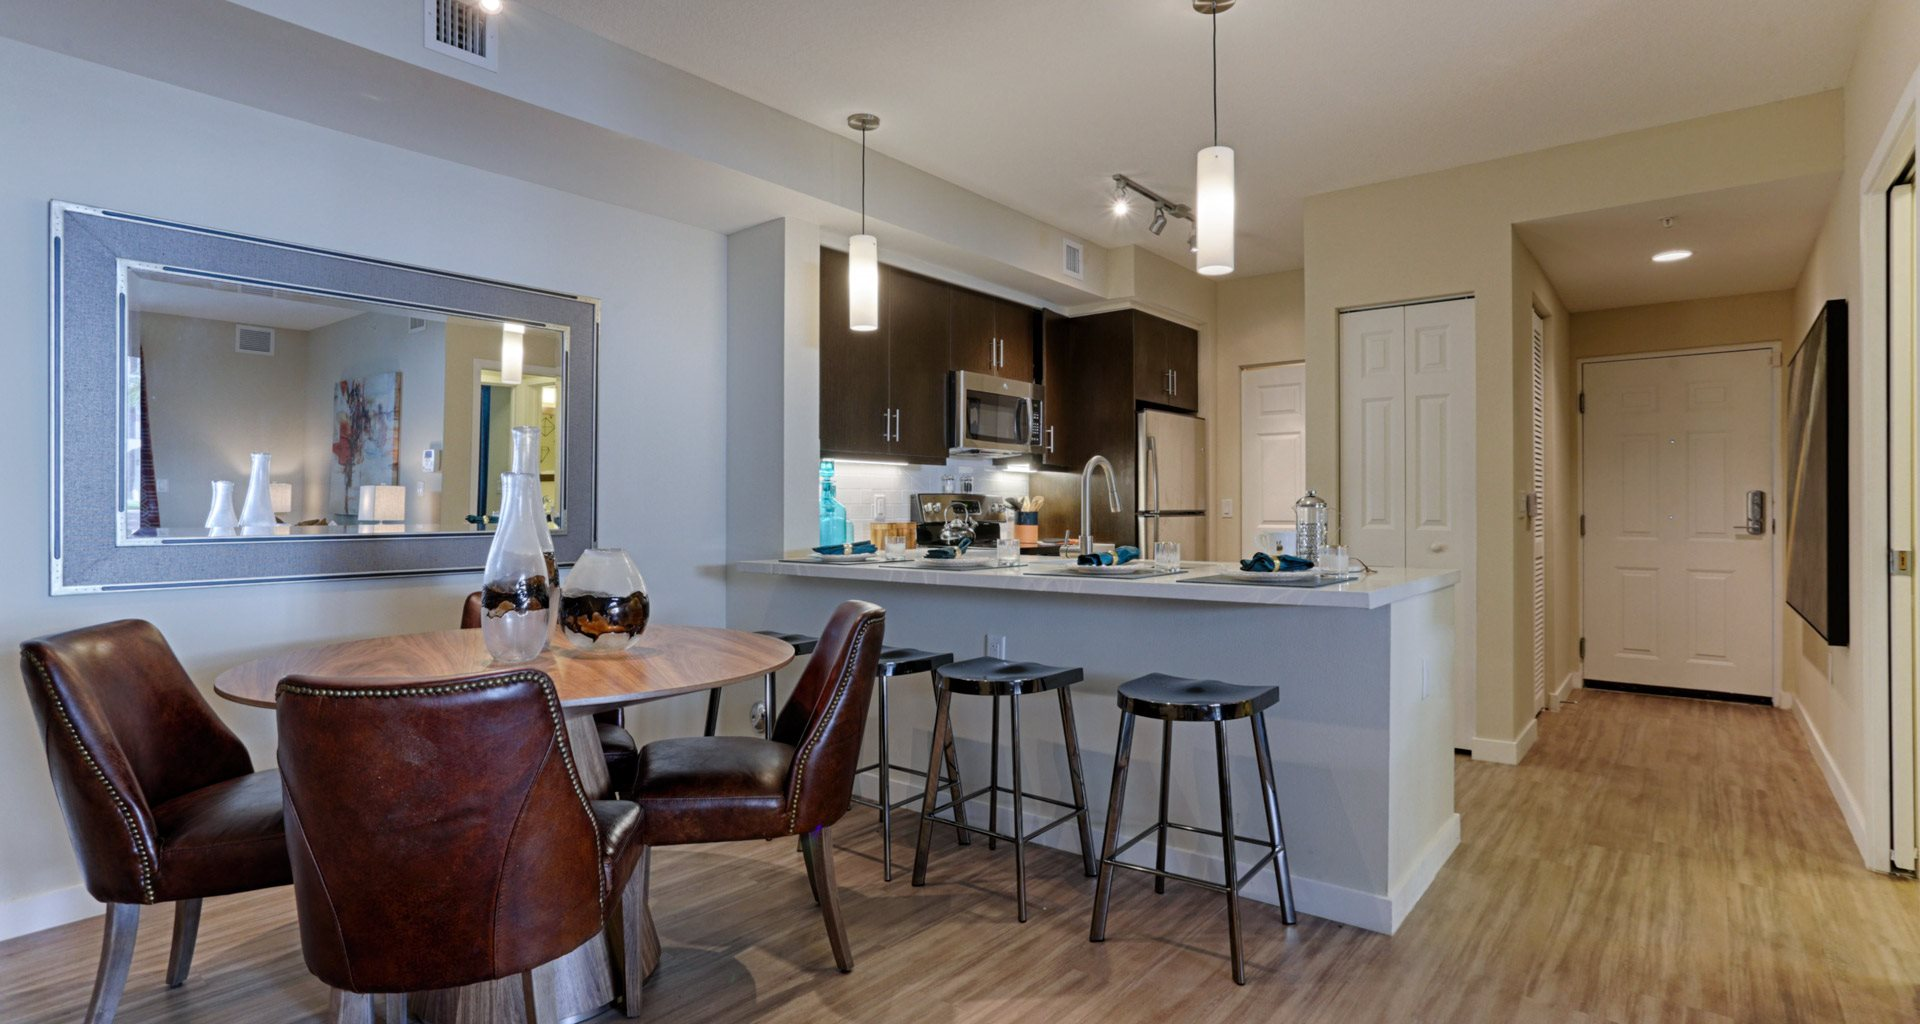 Kitchen with Breakfast Bar at Mirador at Doral by Windsor, Doral, FL, 33122